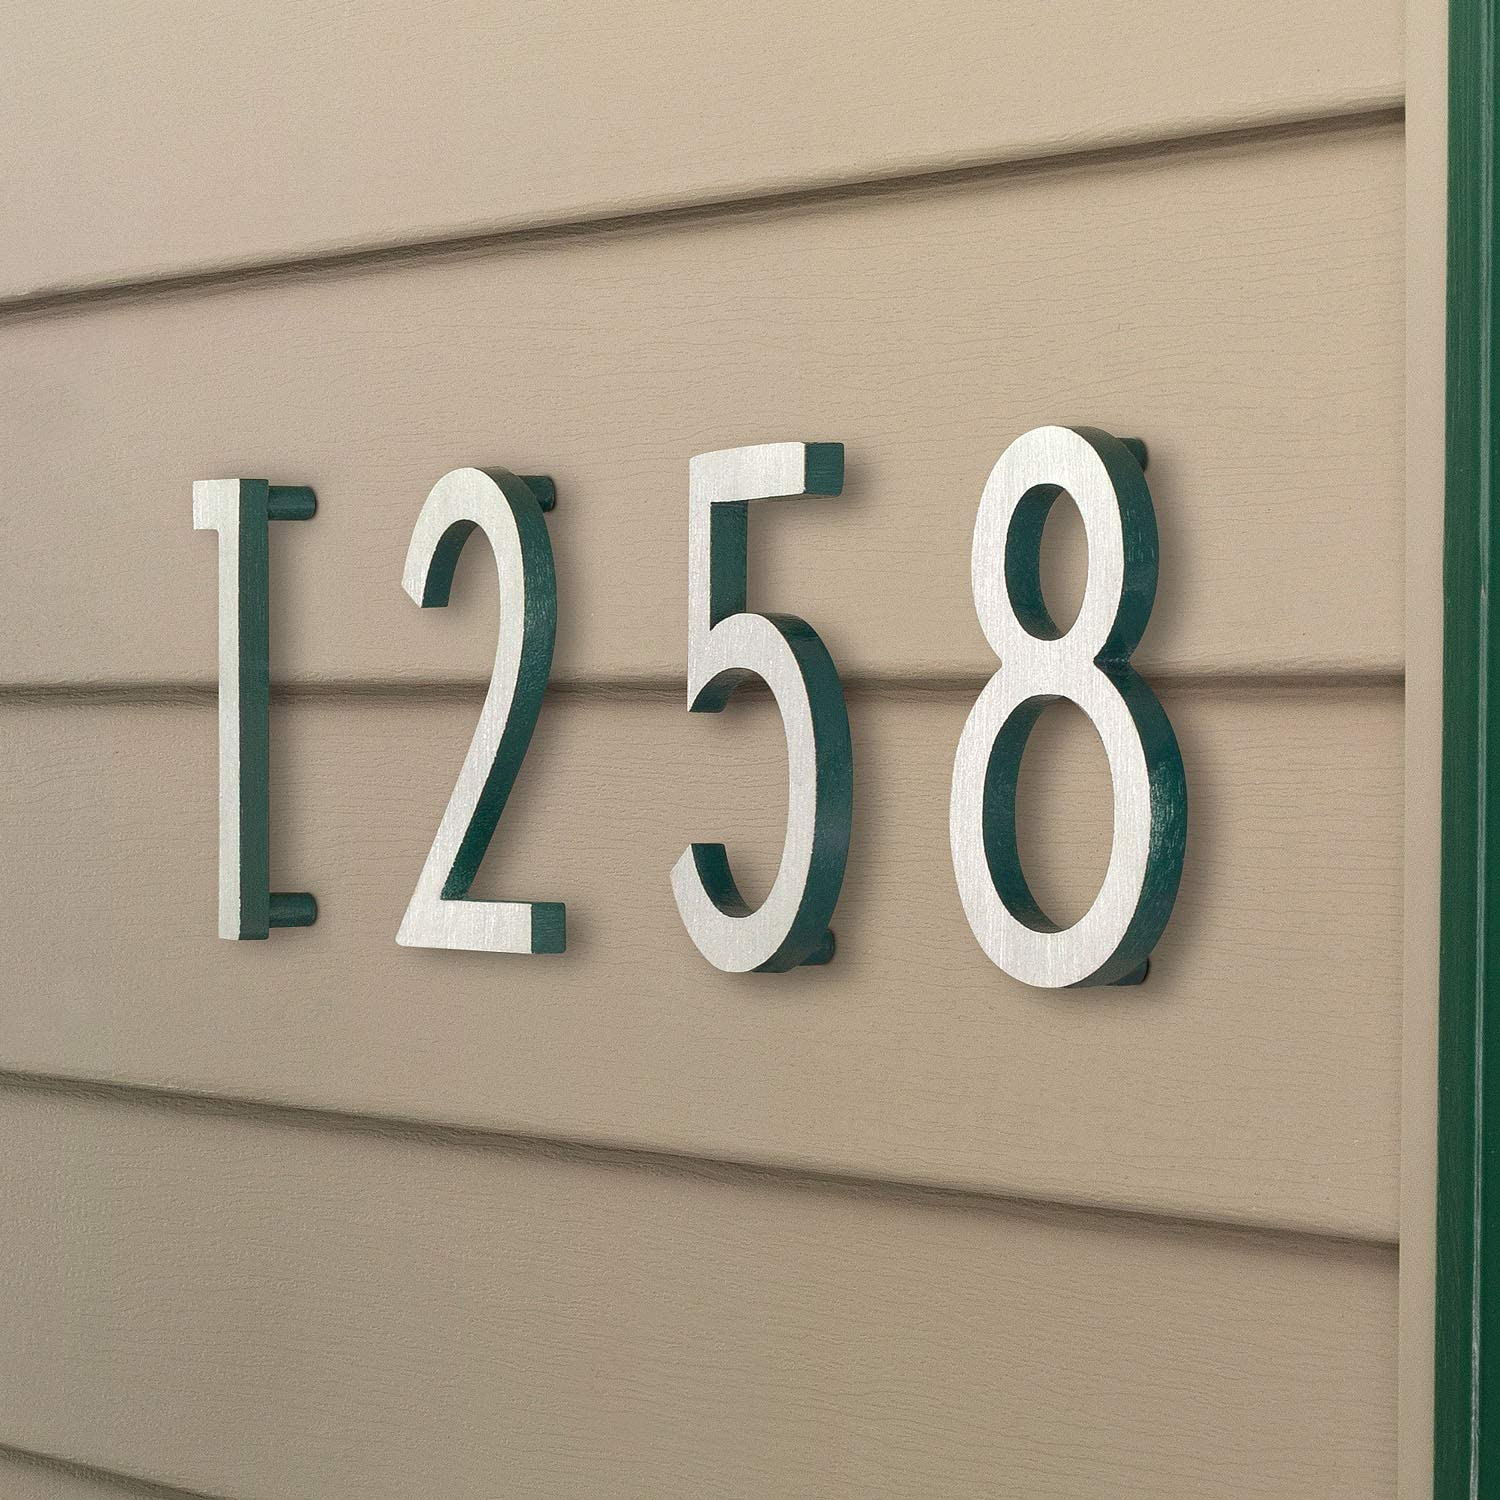 4 inches x 3 inches x 0.31 inches White Montague Metal Products MHN-04-7-F-WE1 Floating House Number